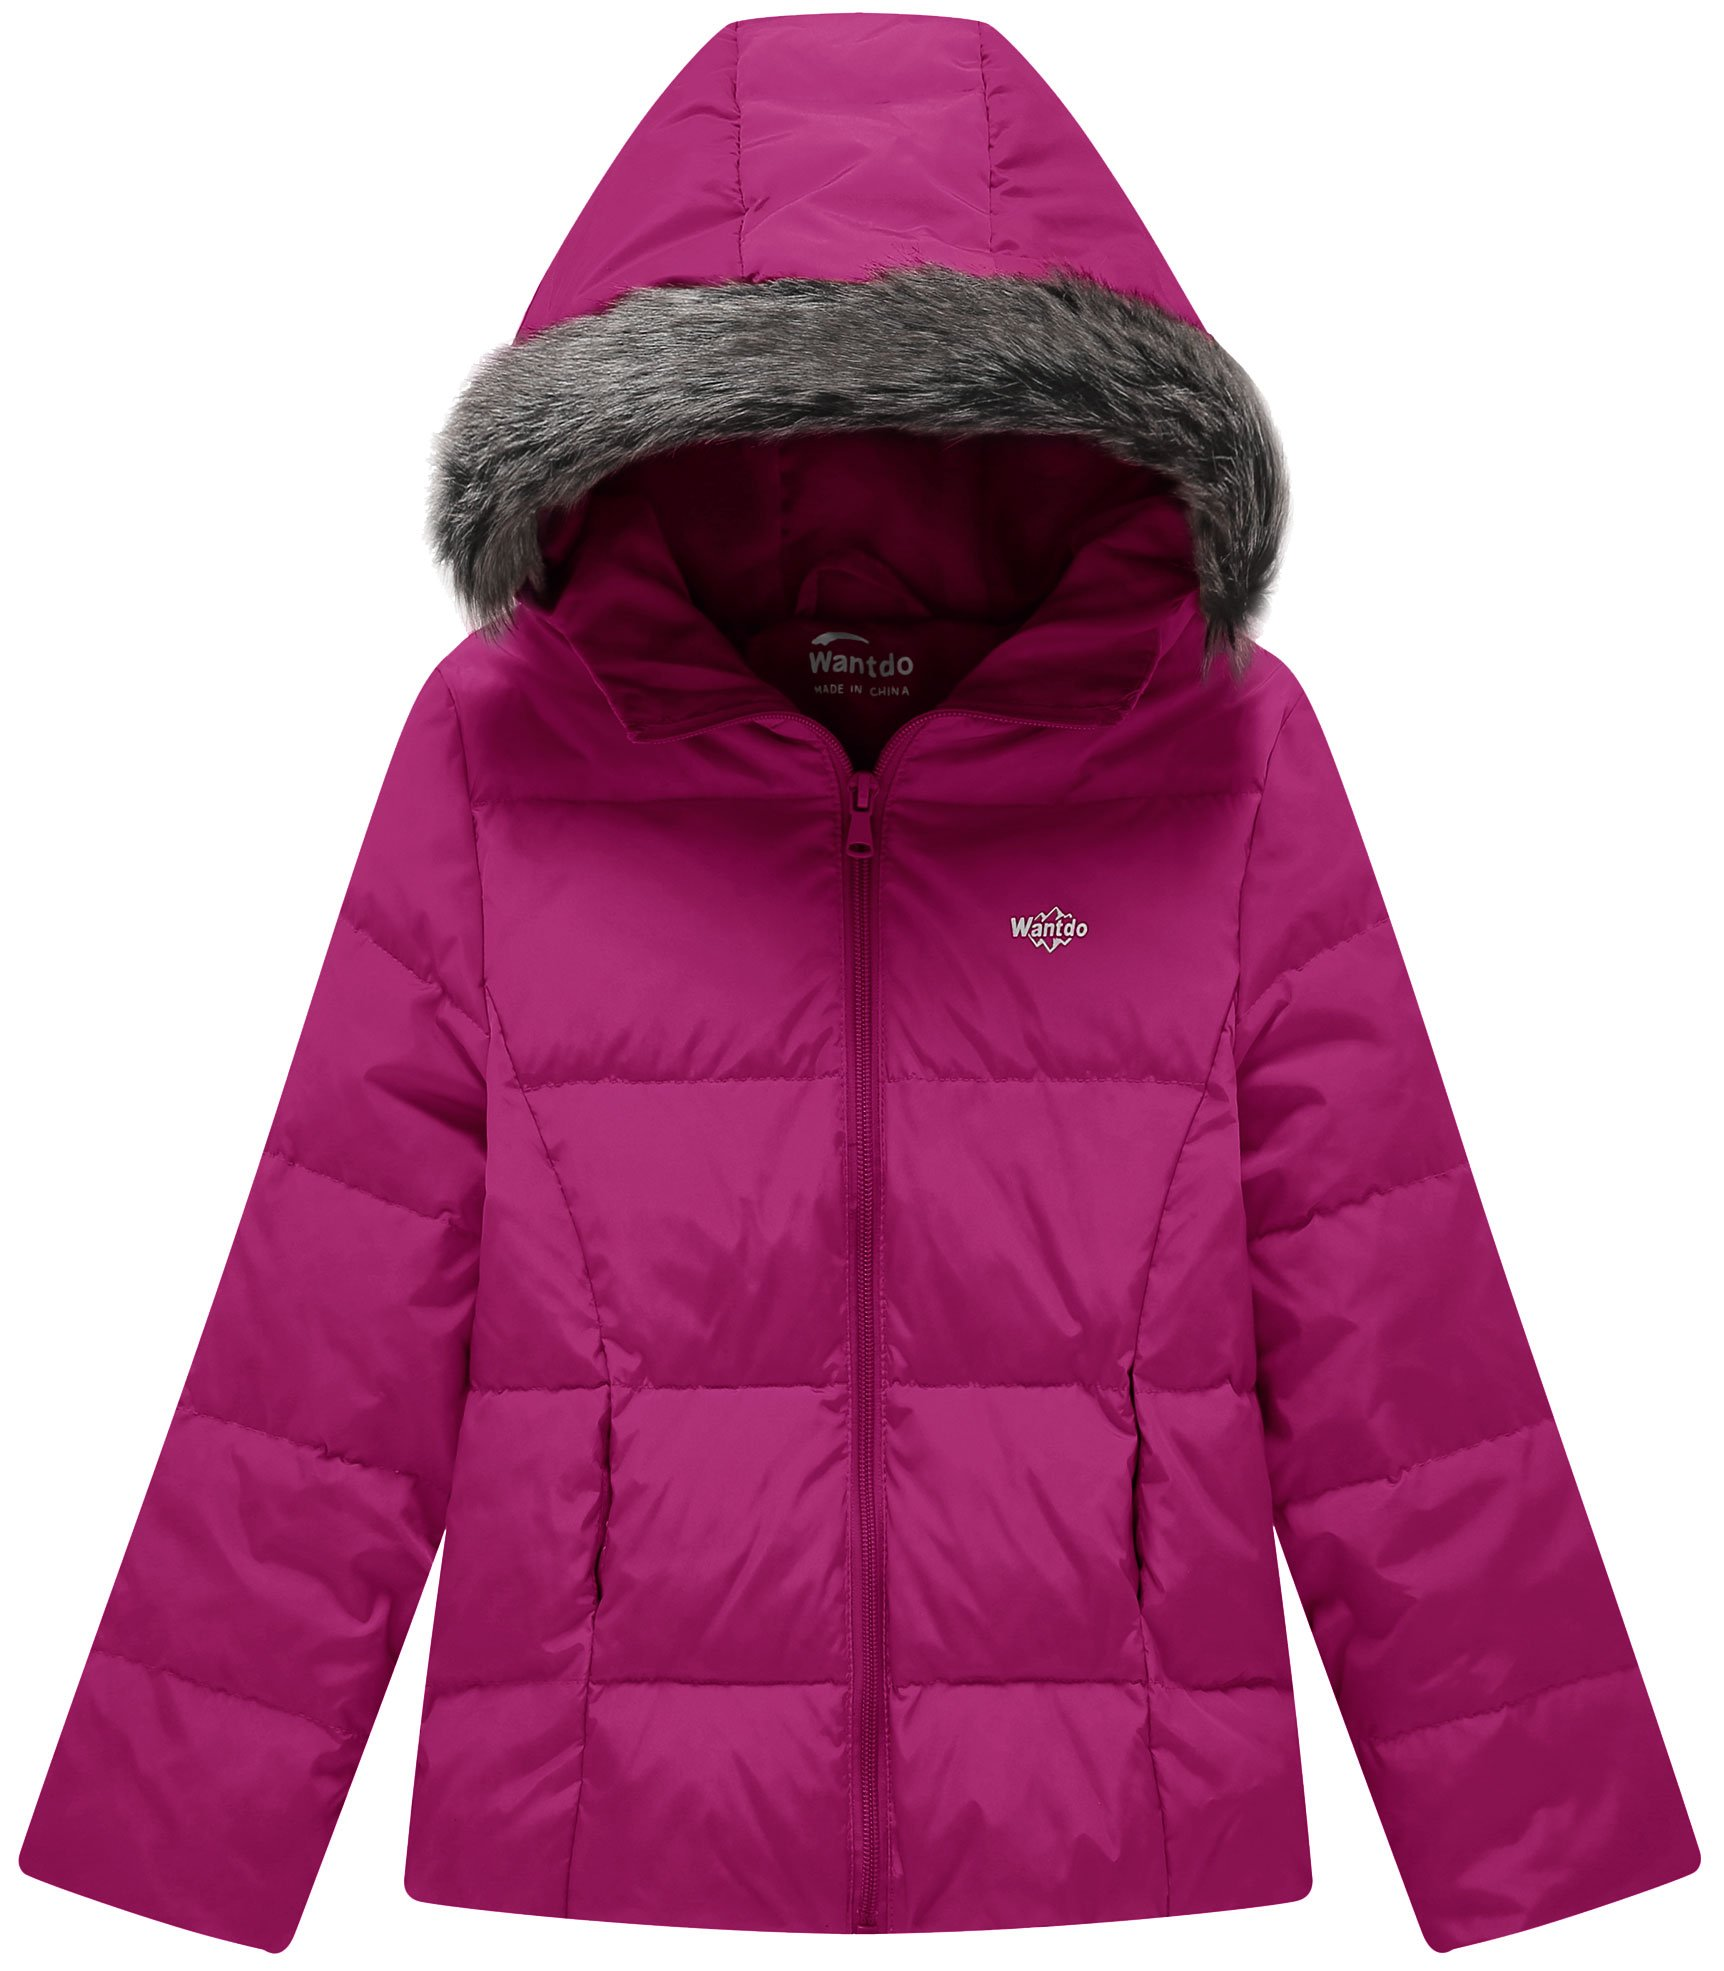 Wantdo Girl's Ultra Light Down Jacket Windproof Hoodies Outwear Short Parka for Camping(Rose Red, 4/5)